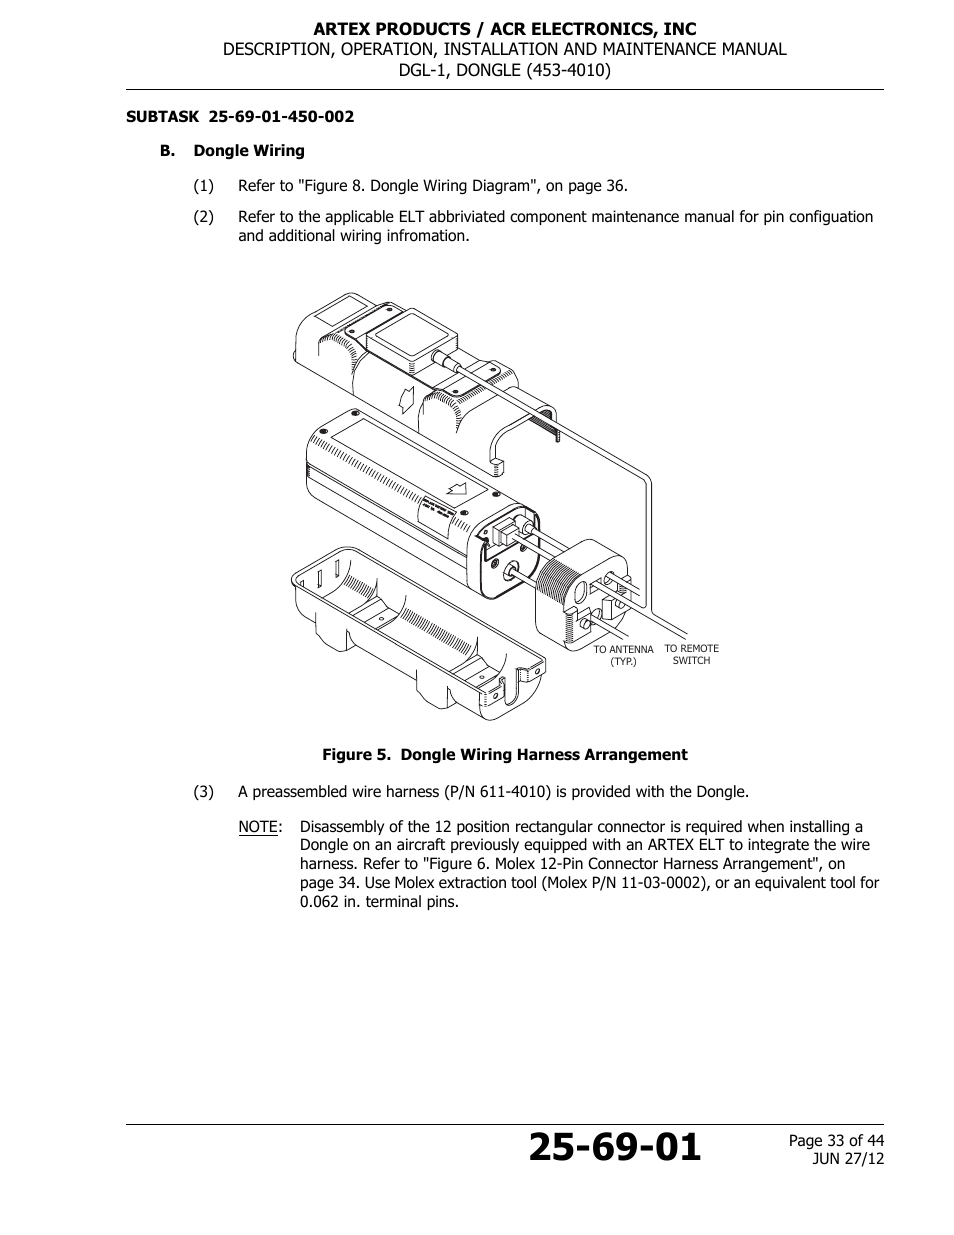 medium resolution of b dongle wiring figure 5 dongle wiring harness arrangement acr artex dgl 1 user manual page 33 44